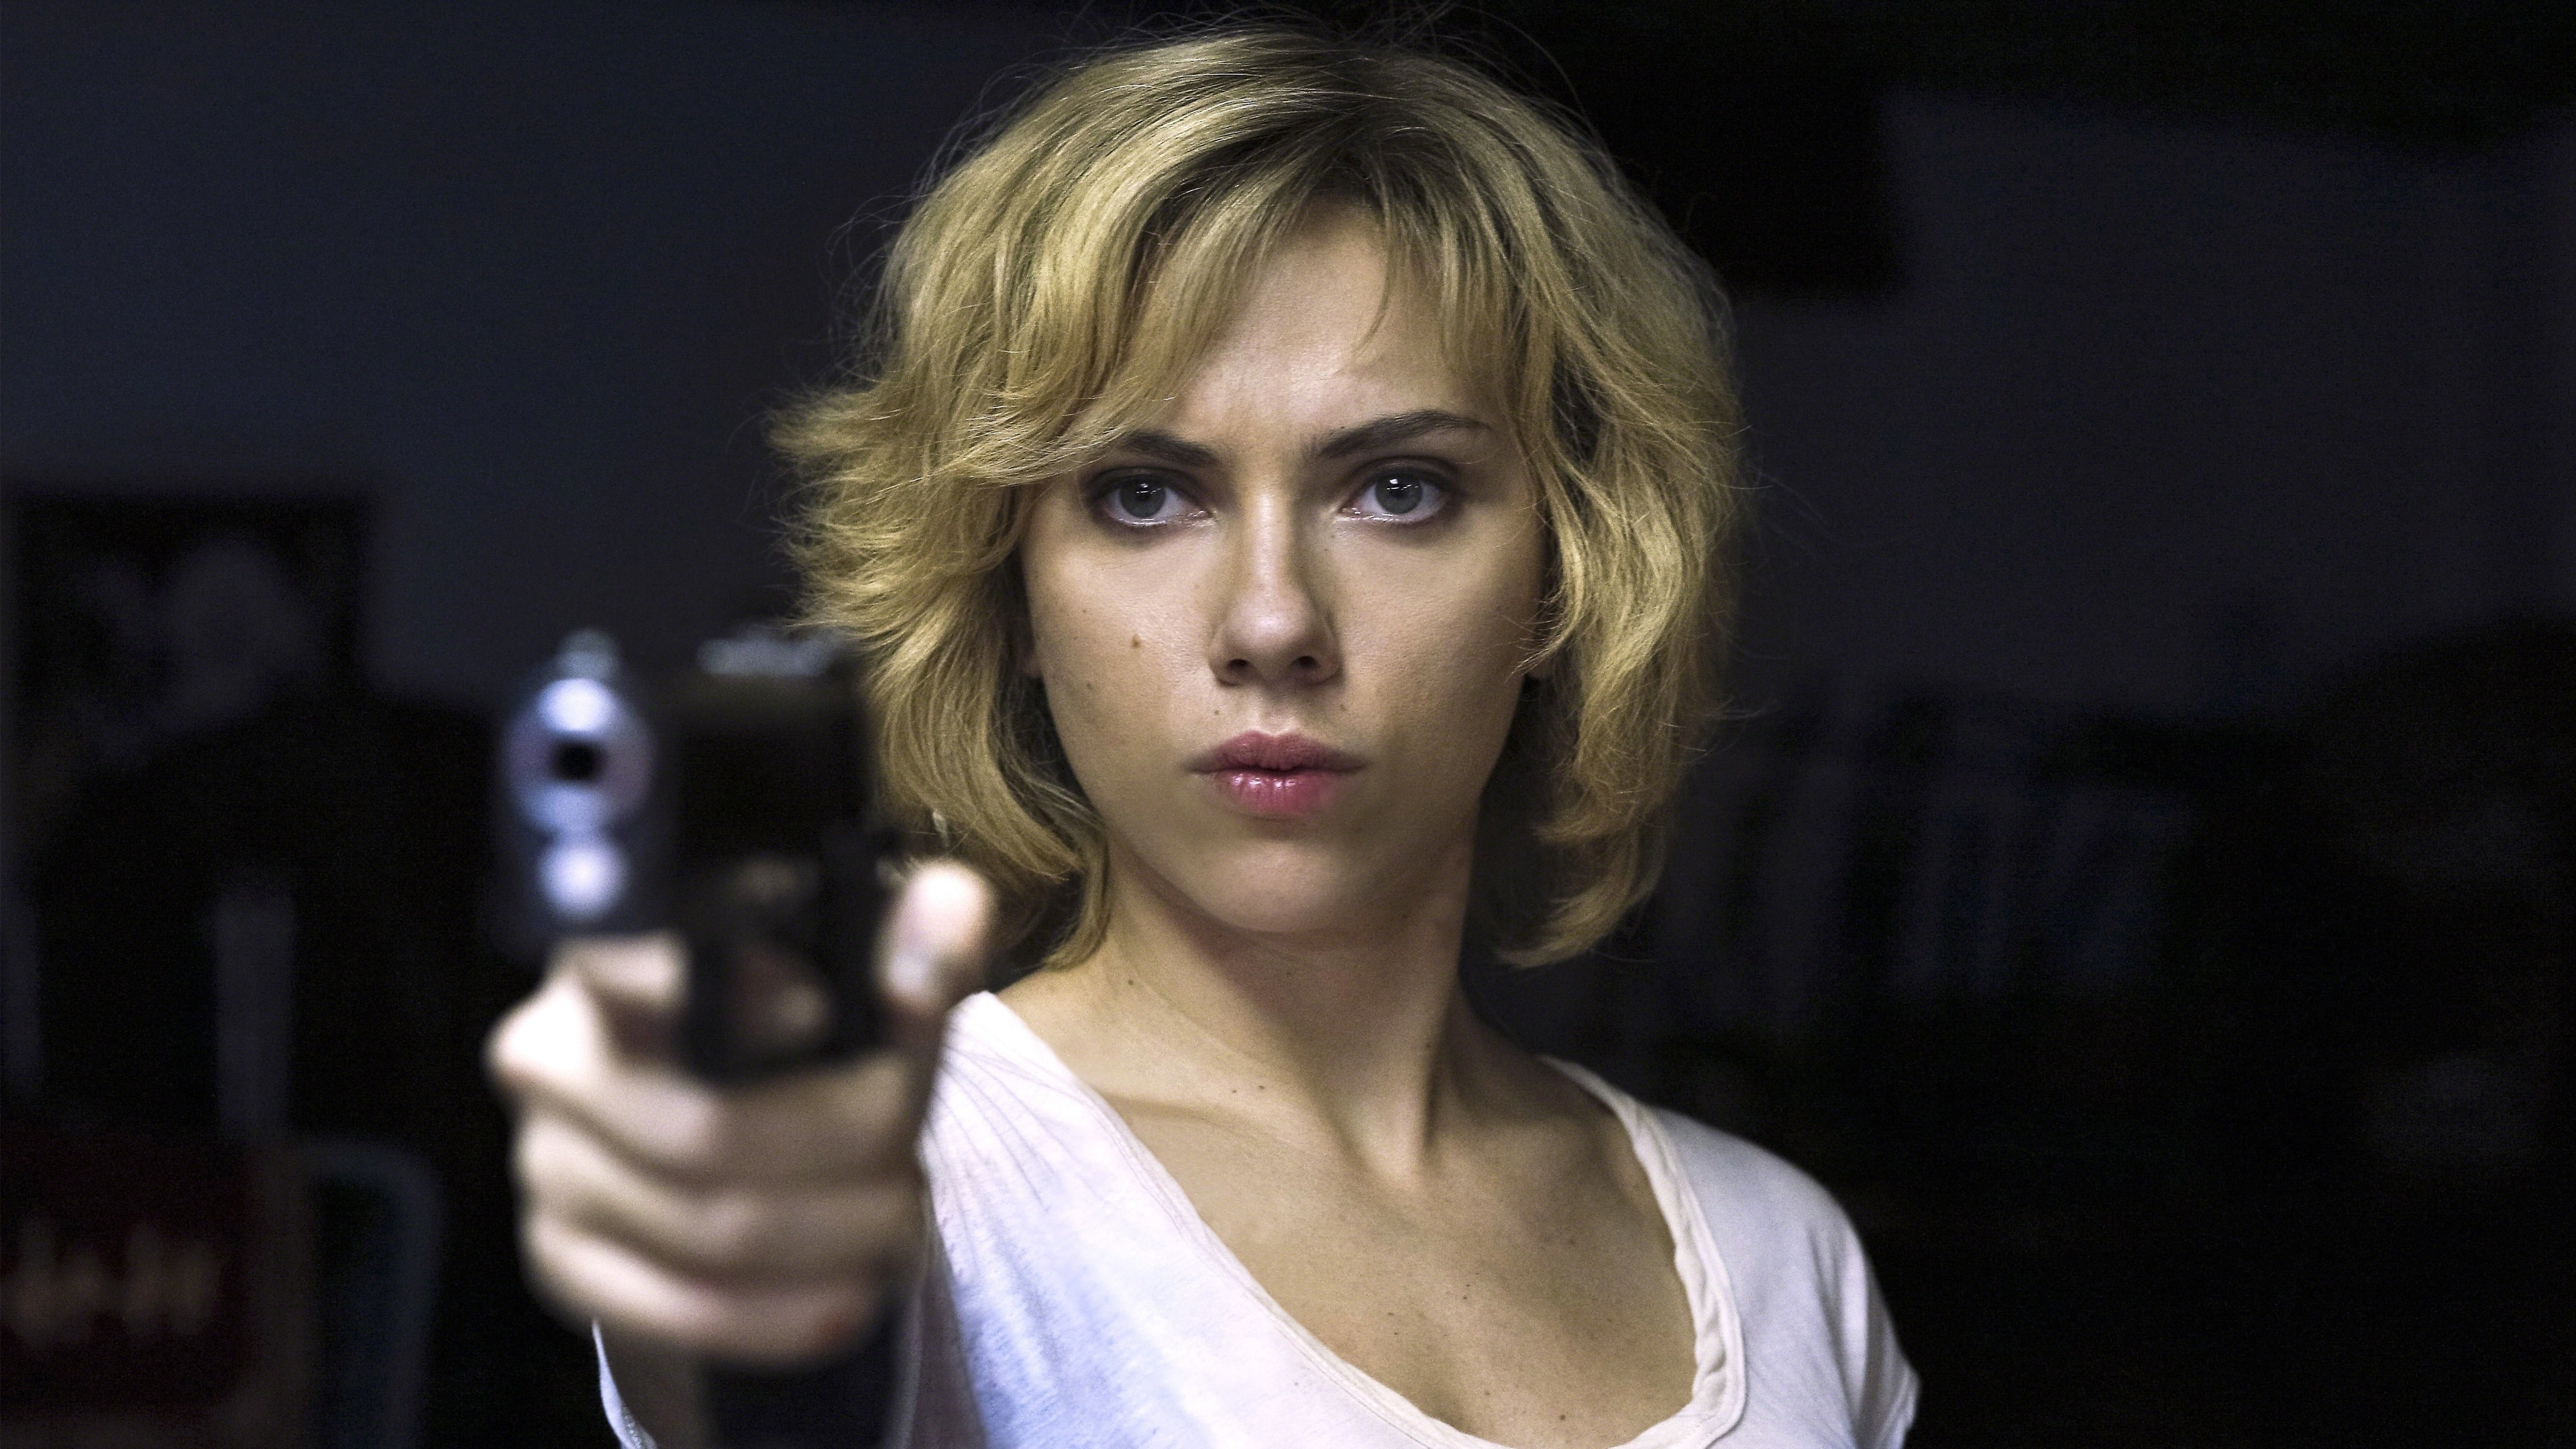 Scarlett Johansson Desktop wallpapers